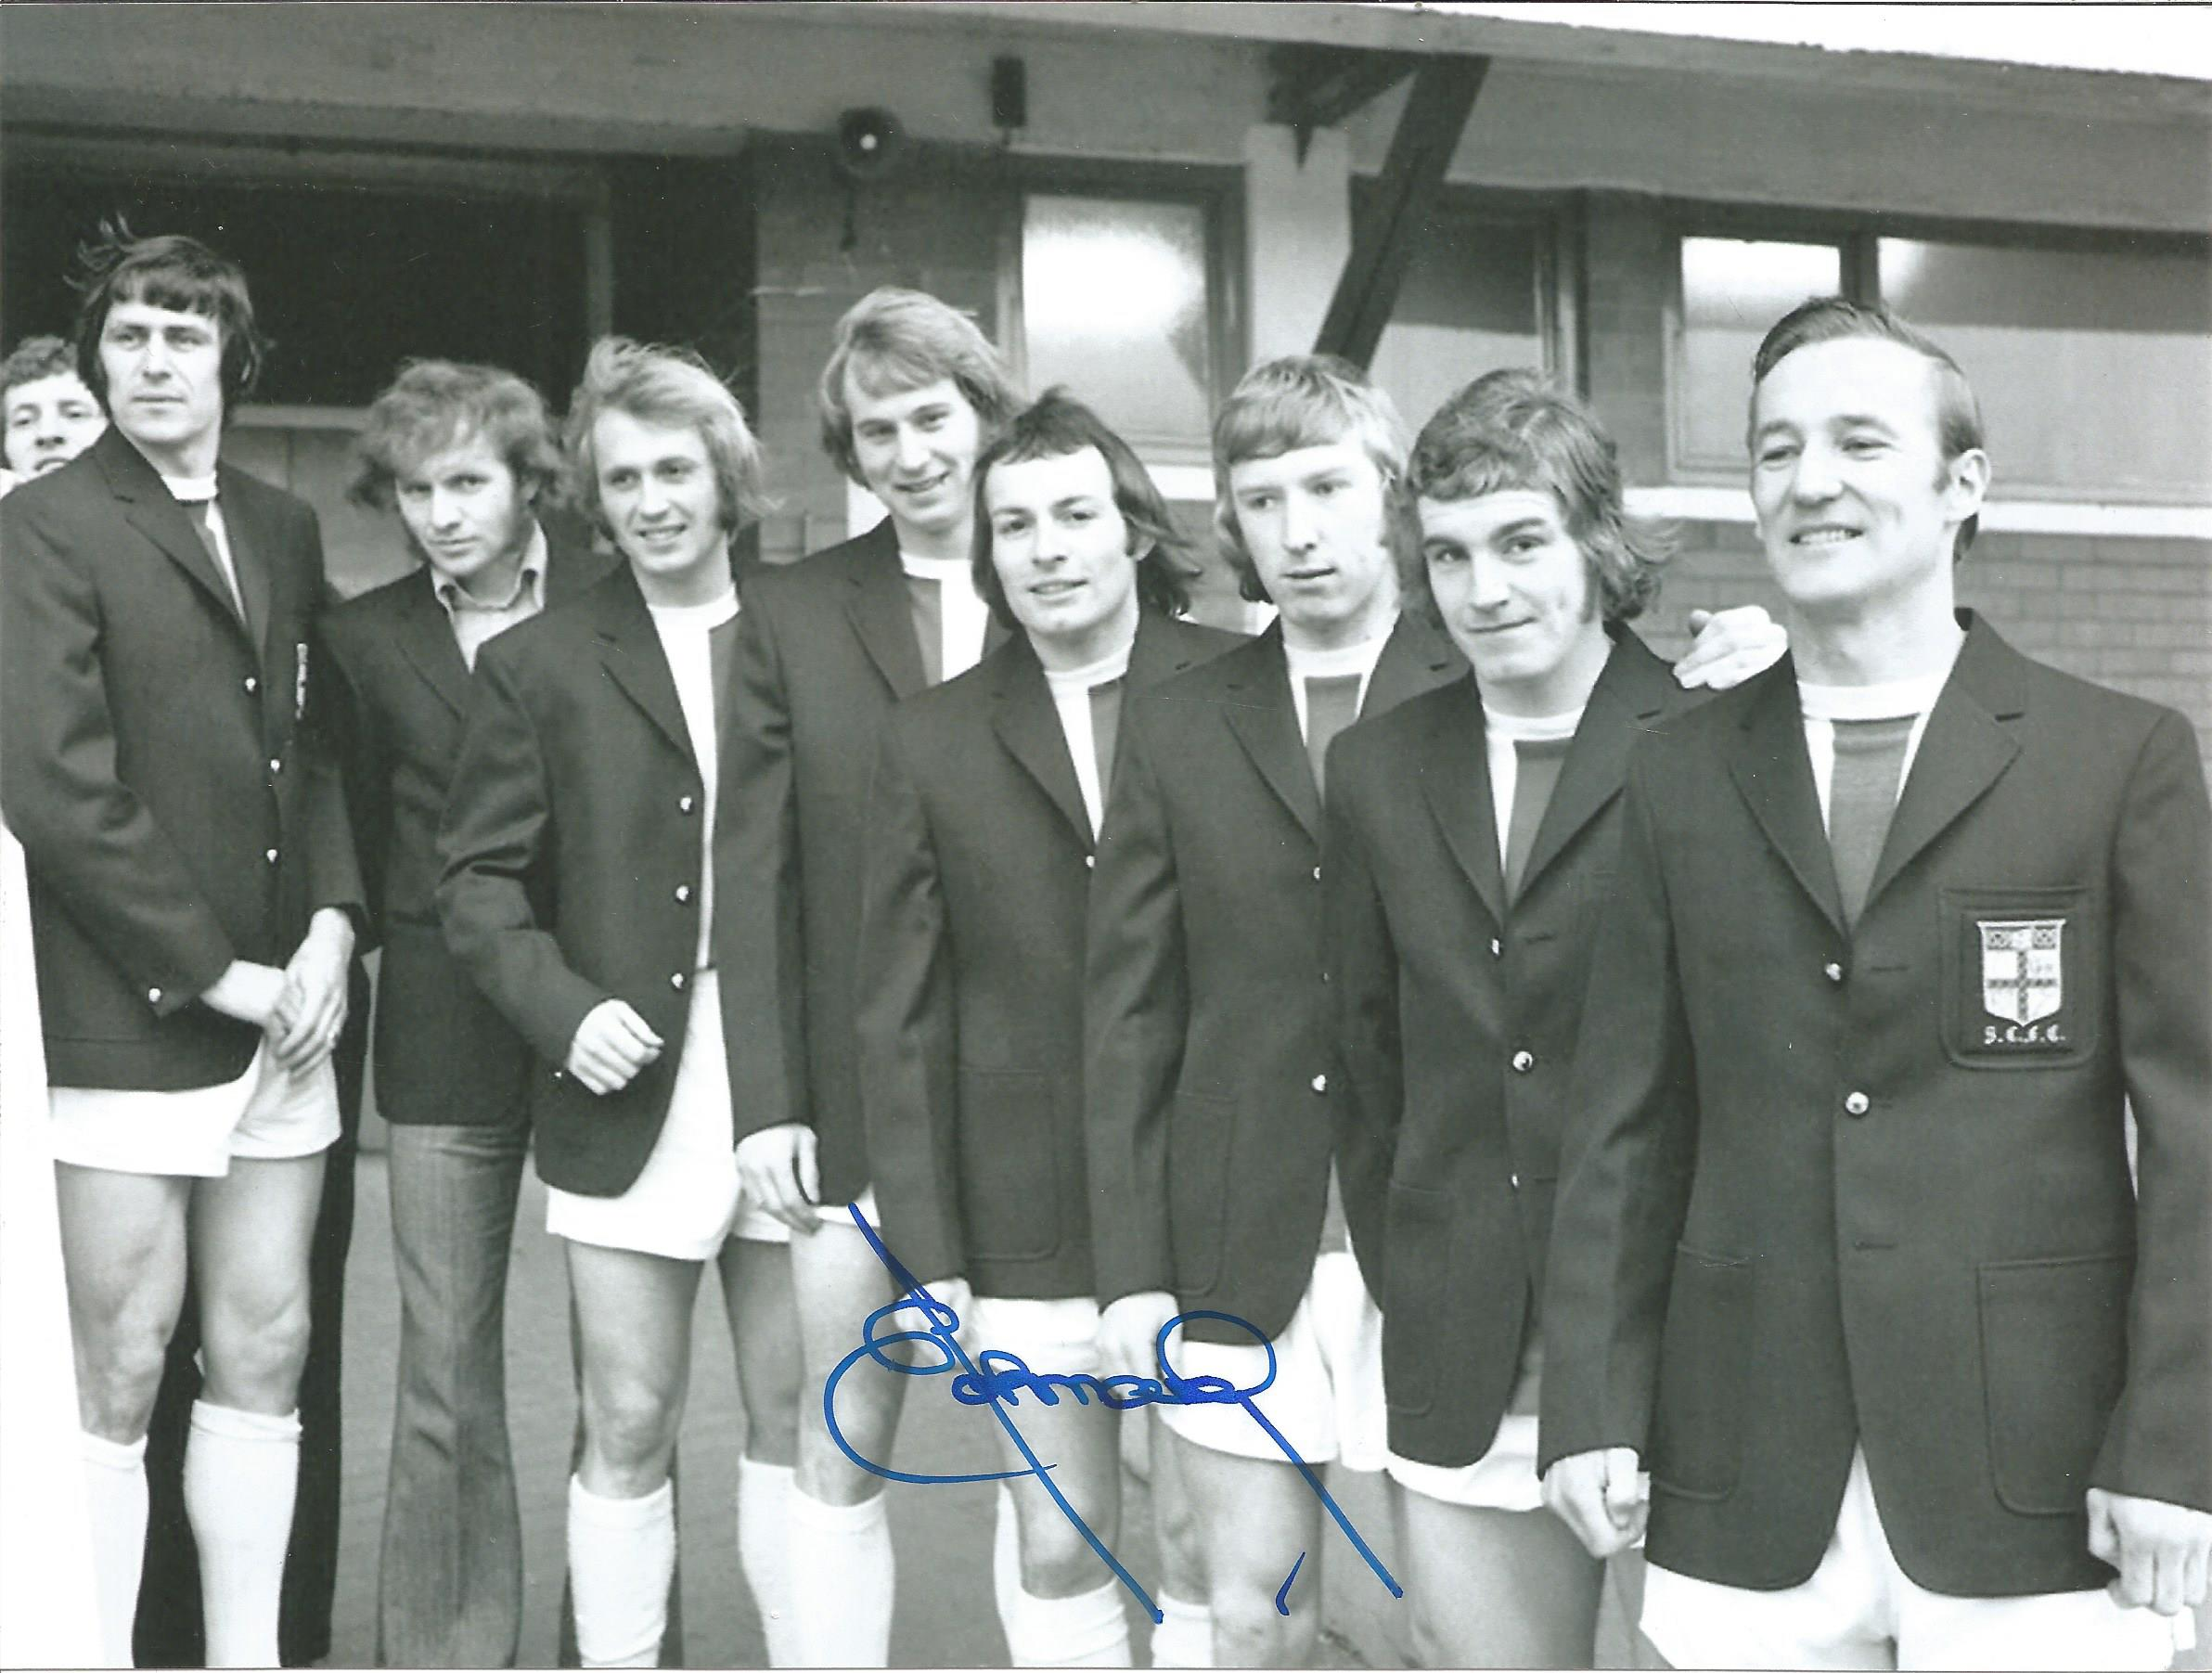 Football Autographed Stoke City 8 X 6 Photos Col & B/W, Depicting Former Player John Marsh In 3 - Image 2 of 3